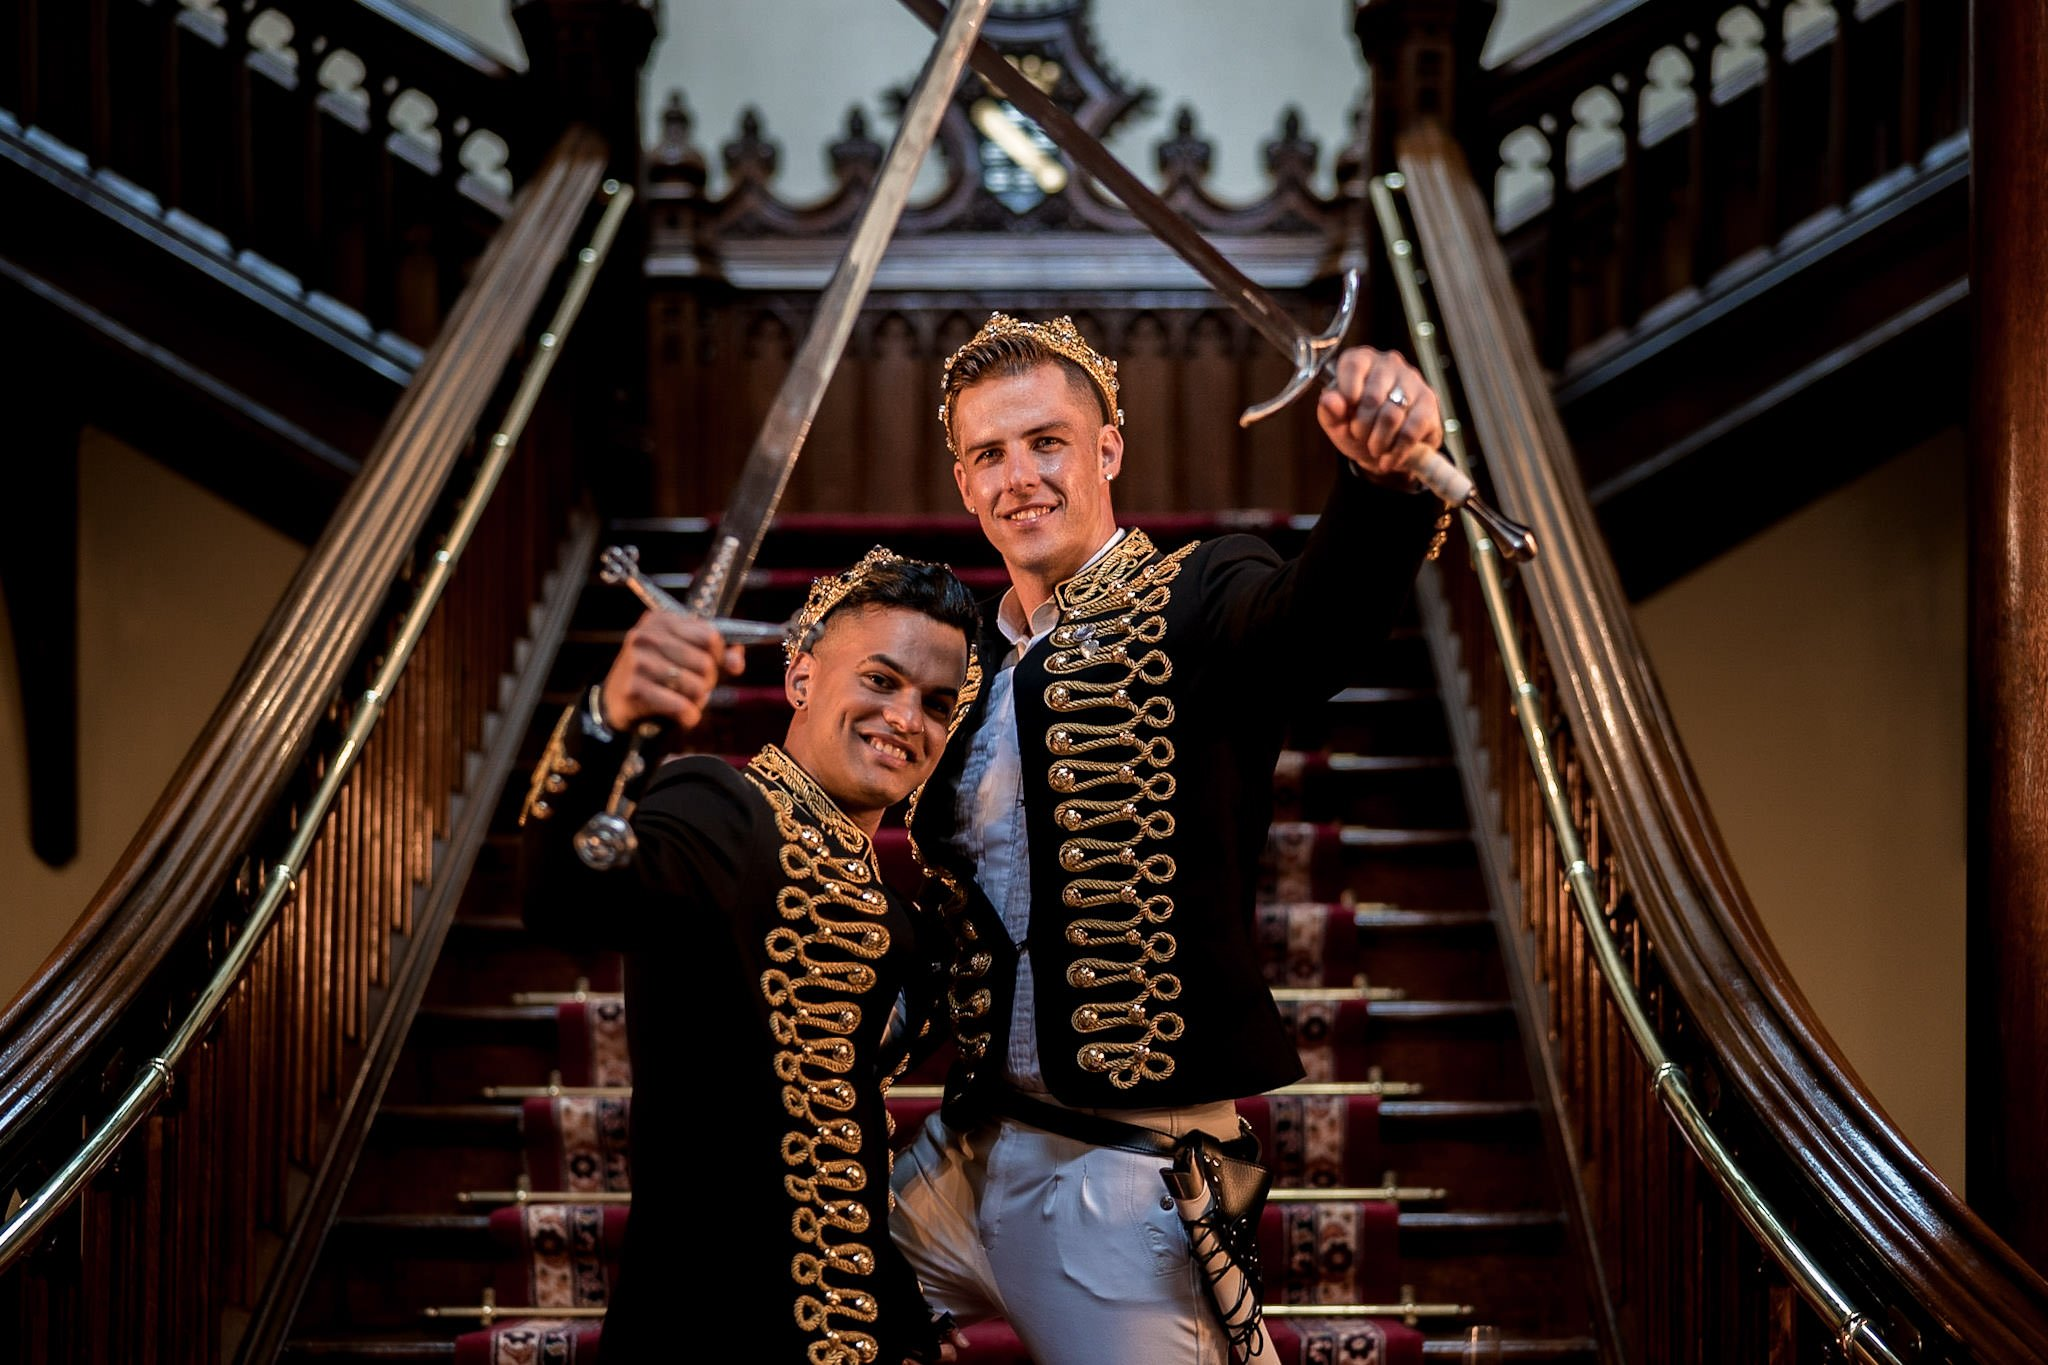 Allerton Castle Knaresborough Hutchinson Weddings Photography groom and groom on the grand staircase holding their swords aloft and crossing them